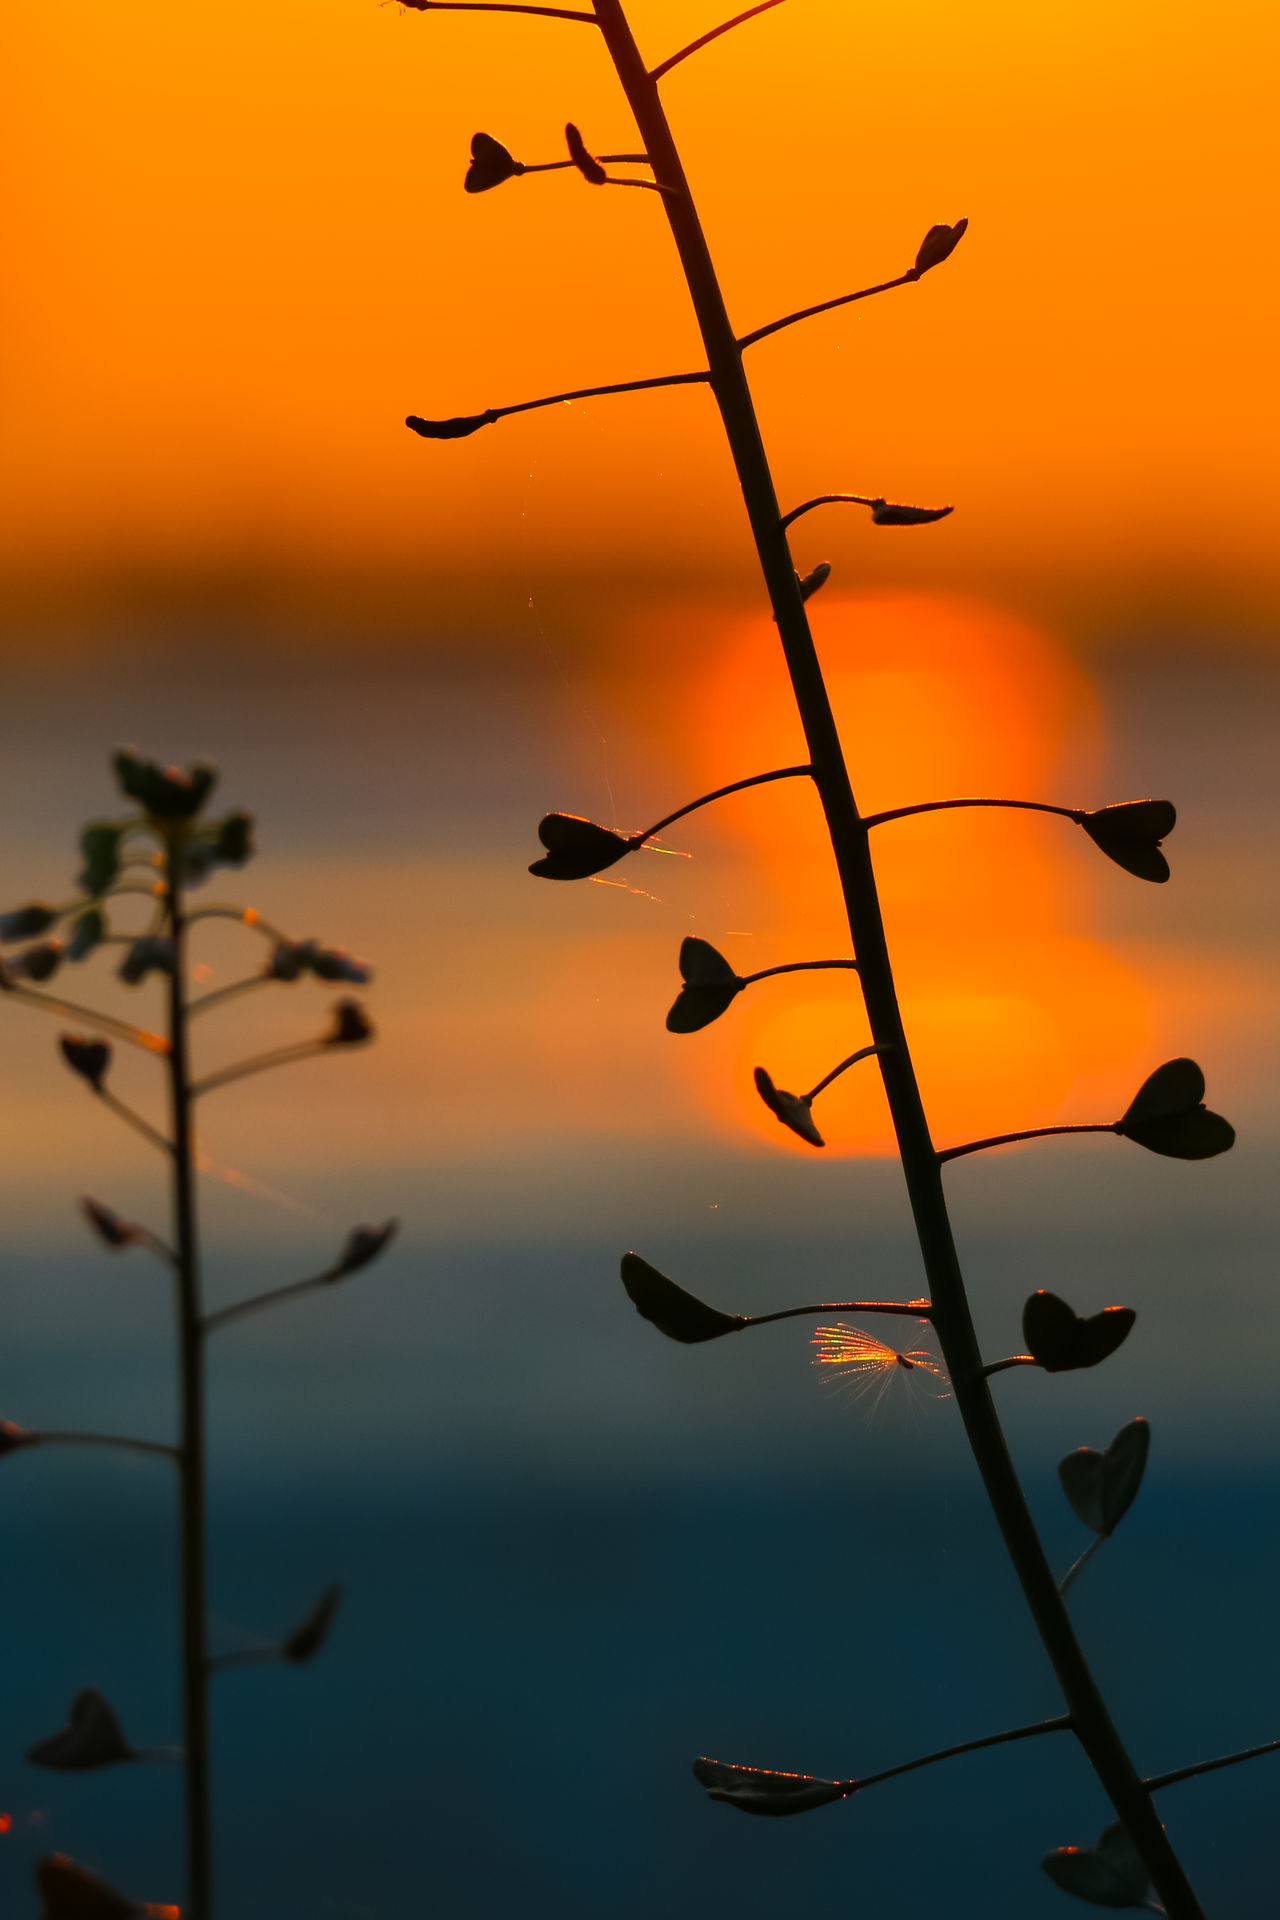 Hearts Beauty In Nature Close-up Colorful Gradient Growth Heart Heart Shape Hearts Leaf Love Love ♥ Macro Photography Nature Orange Color Outdoors Plant Silhouette Silhouette Silhouettes Sundown Sunset Sunset Silhouettes Weed Weeds Are Beautiful Too